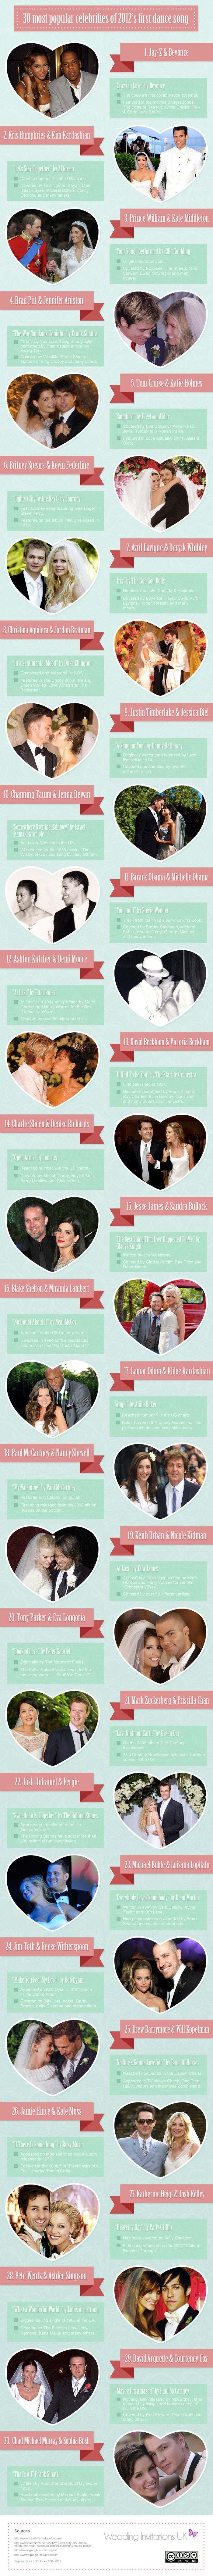 Celebrity first dance songs! Sourced from @SHEfinds